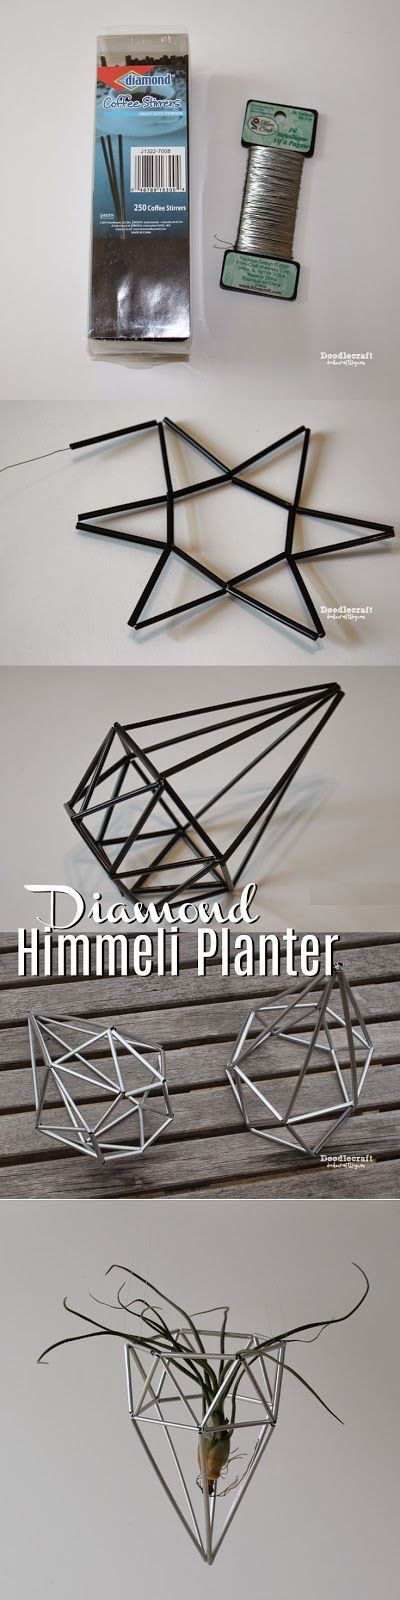 Diamond Himmeli Planter! Since April is the month of diamonds, I thought this fitting! Perfect for hanging up air plants or just plai...